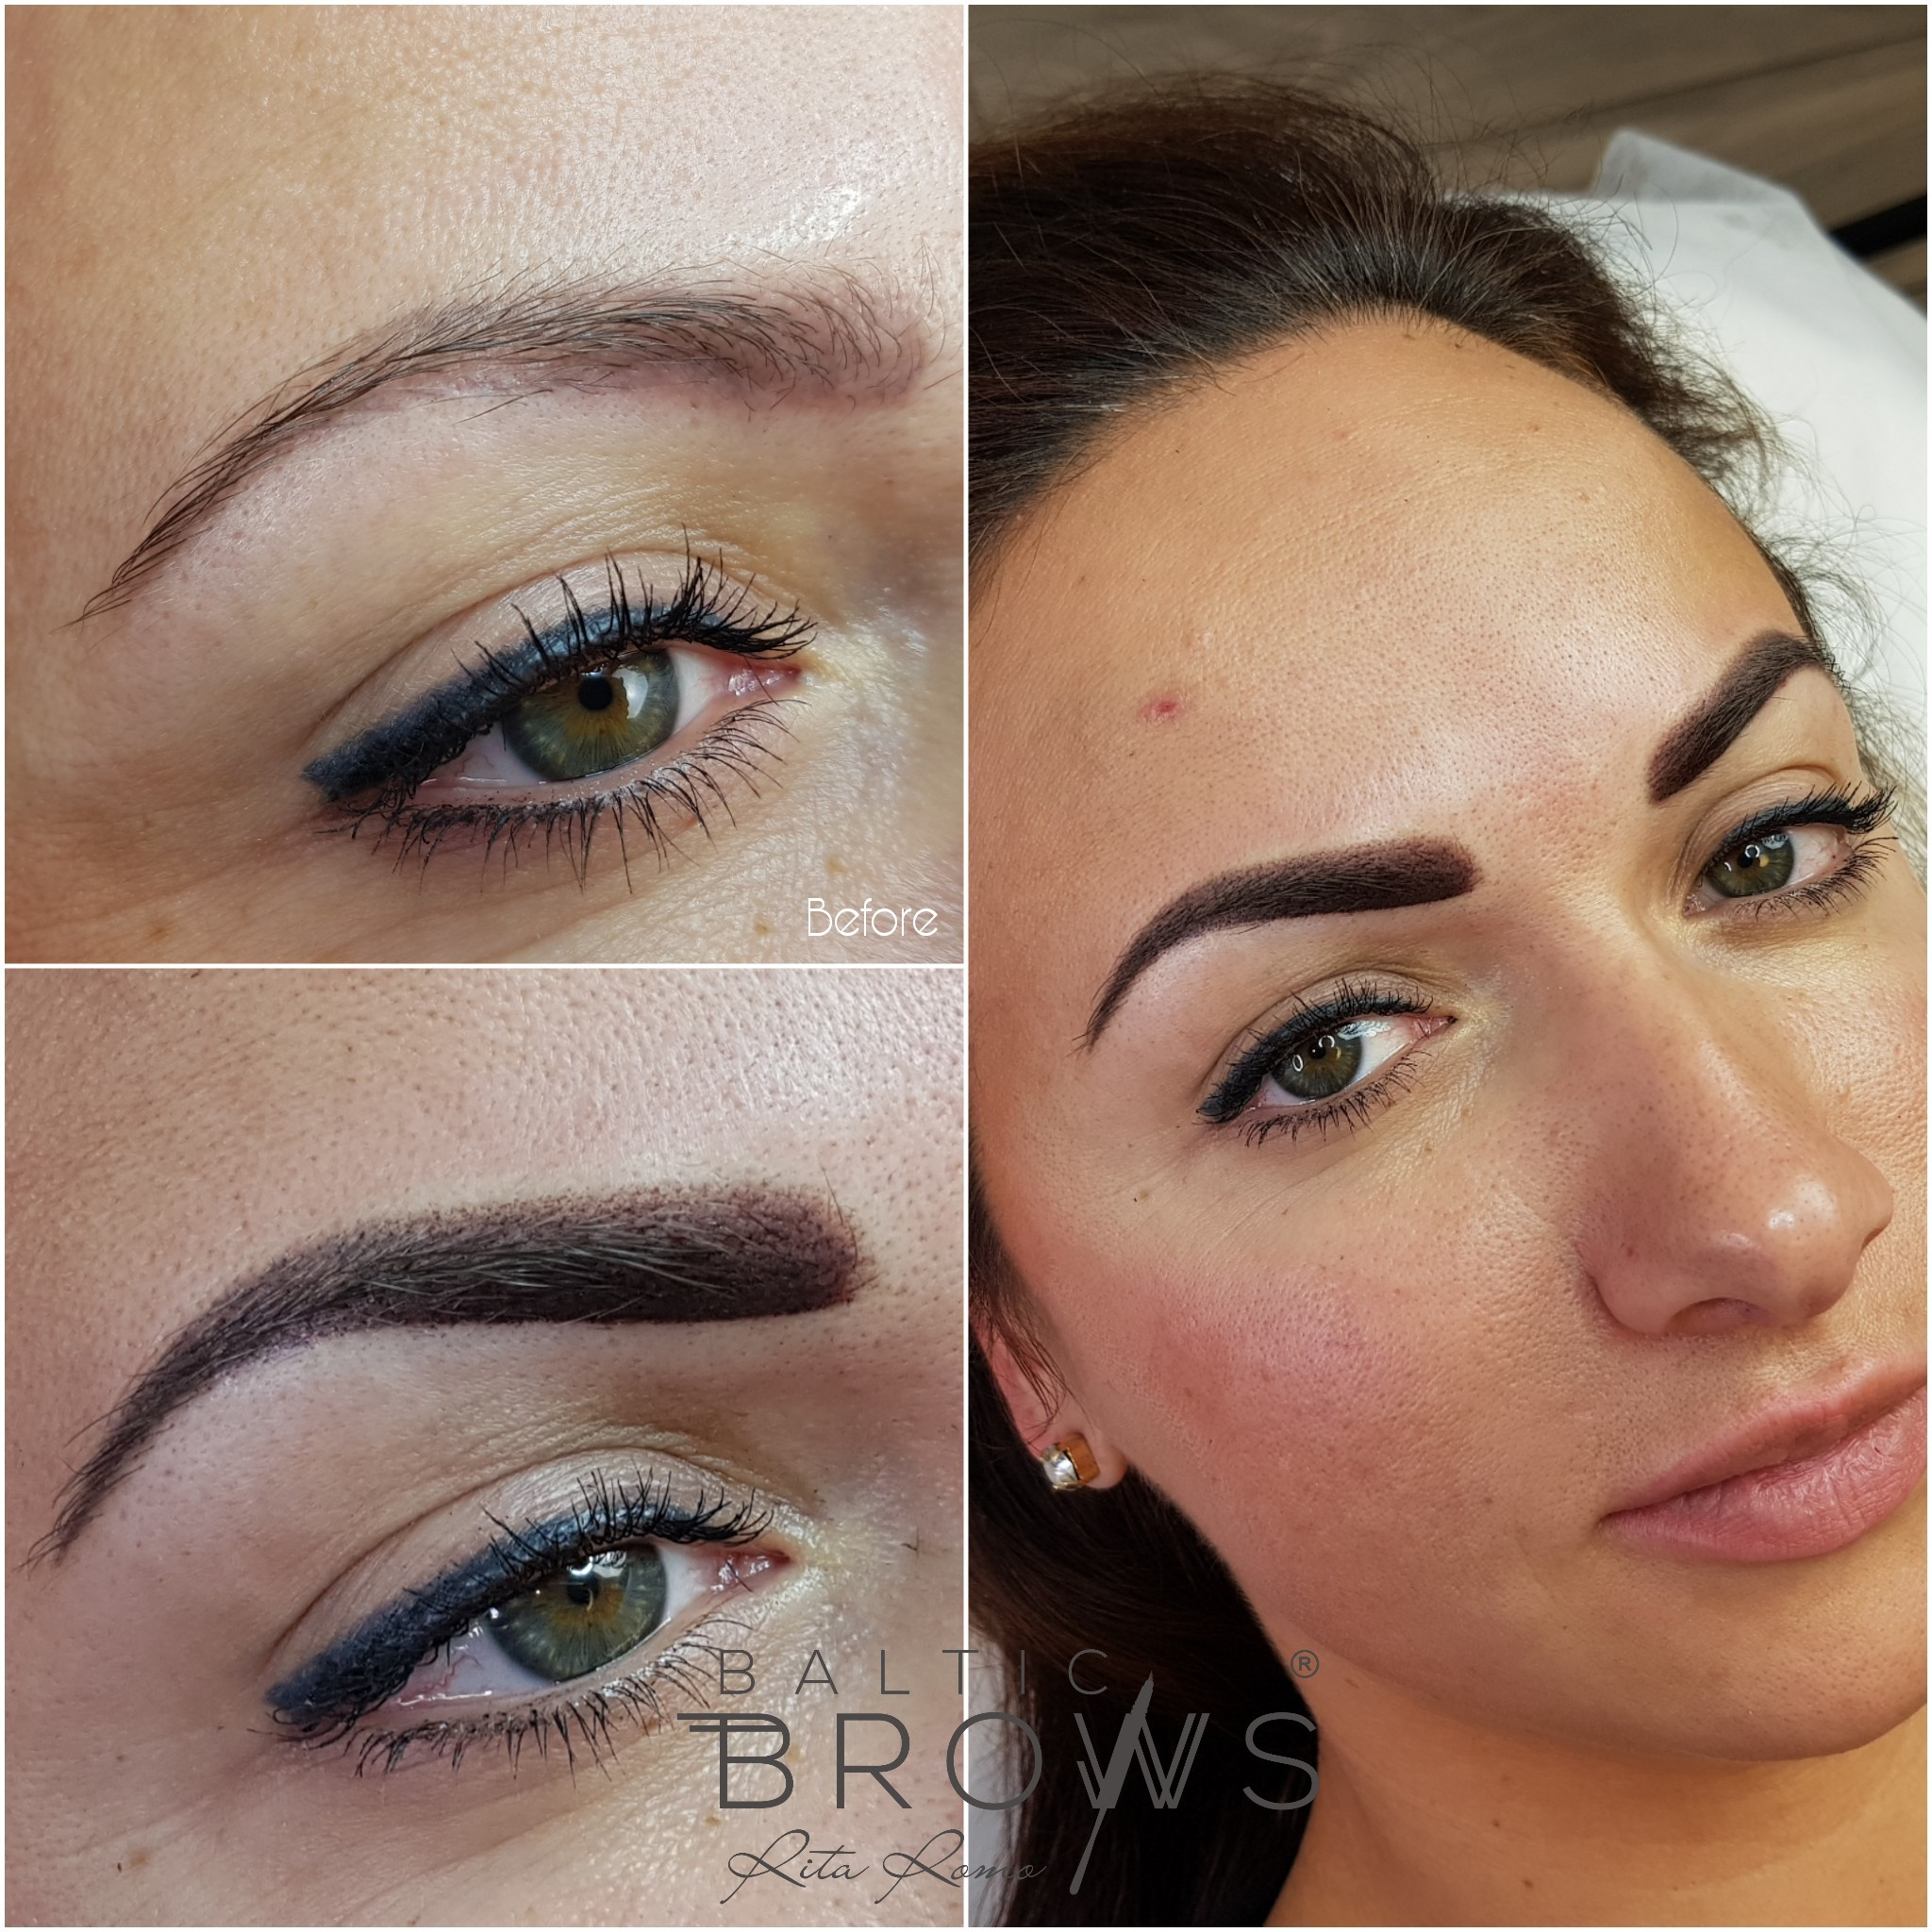 Ombre brows manual - Balticbrows